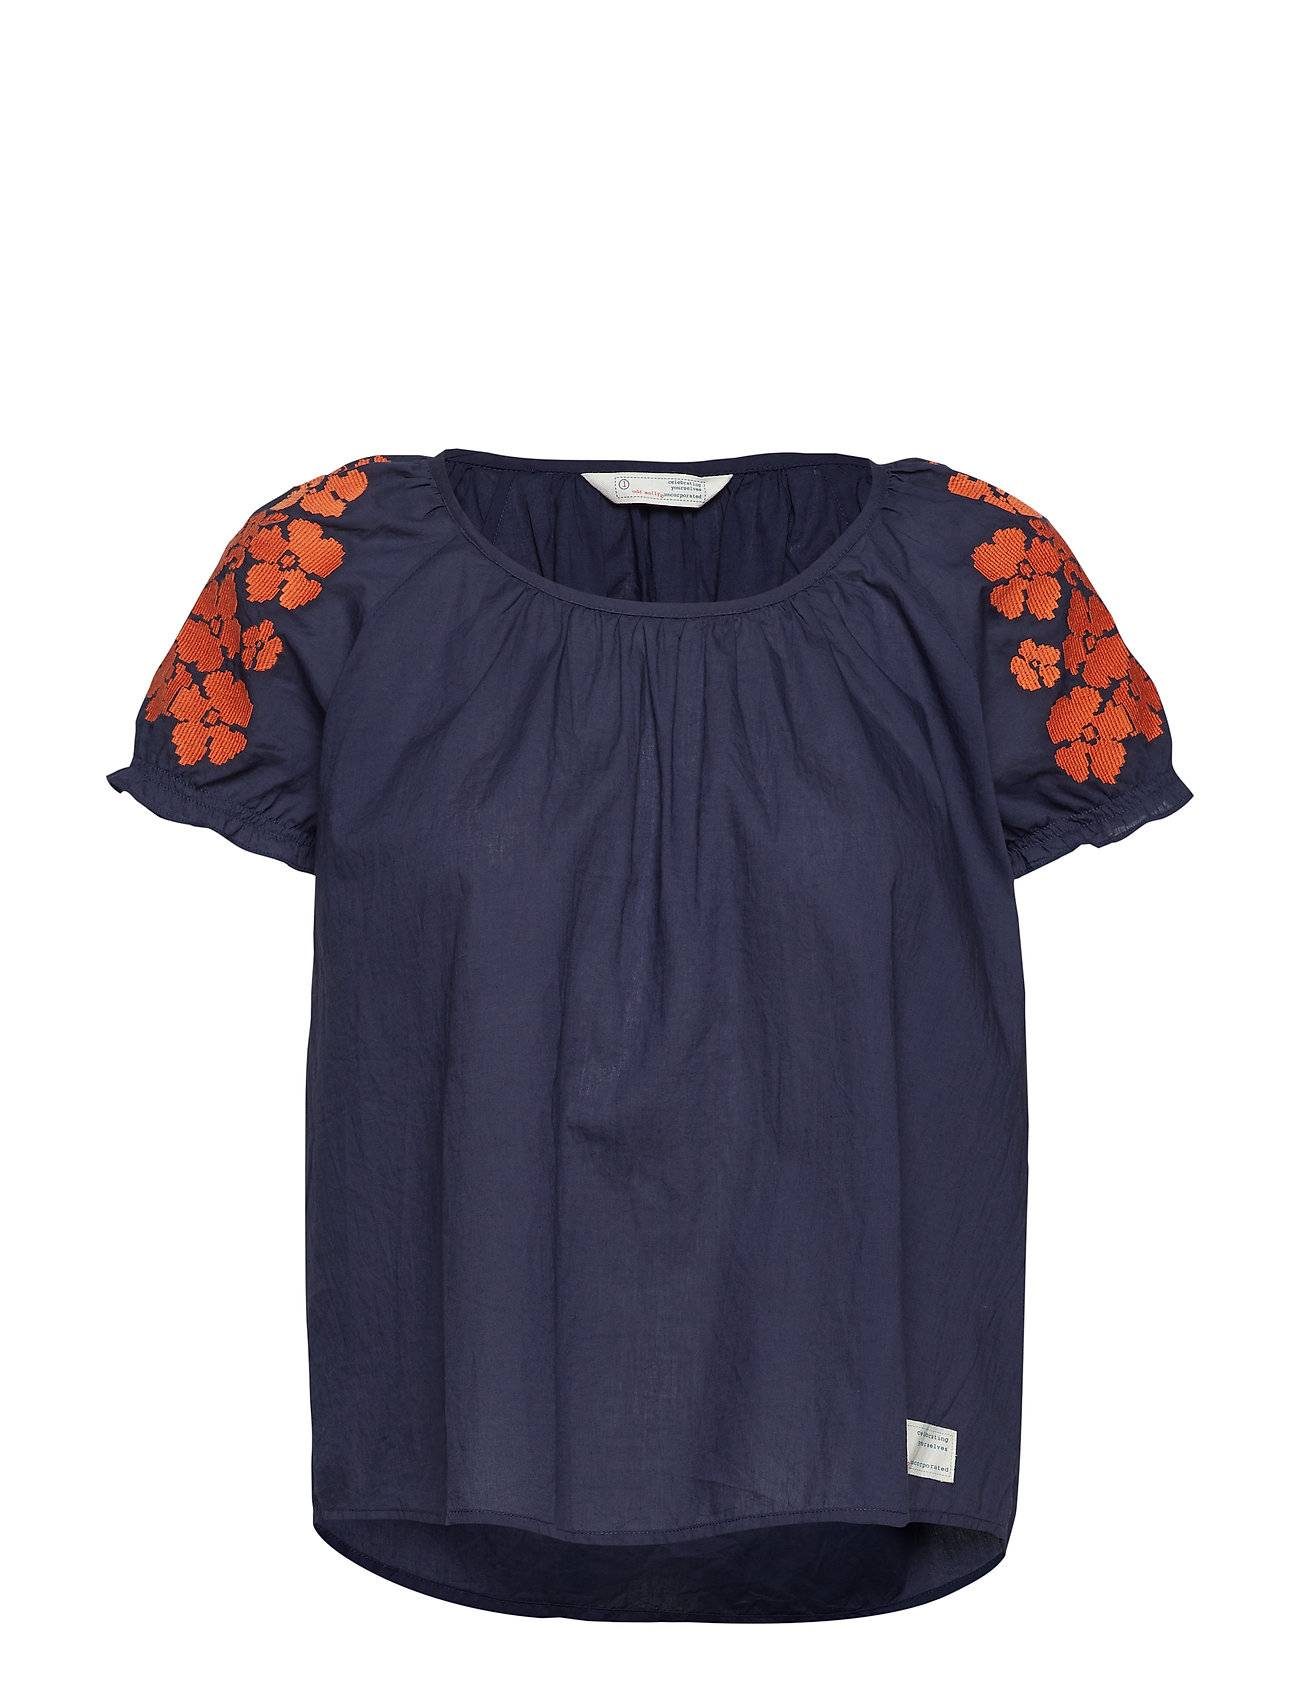 Image of ODD MOLLY Wooo-Hooo Blouse Blouses Short-sleeved Sininen ODD MOLLY